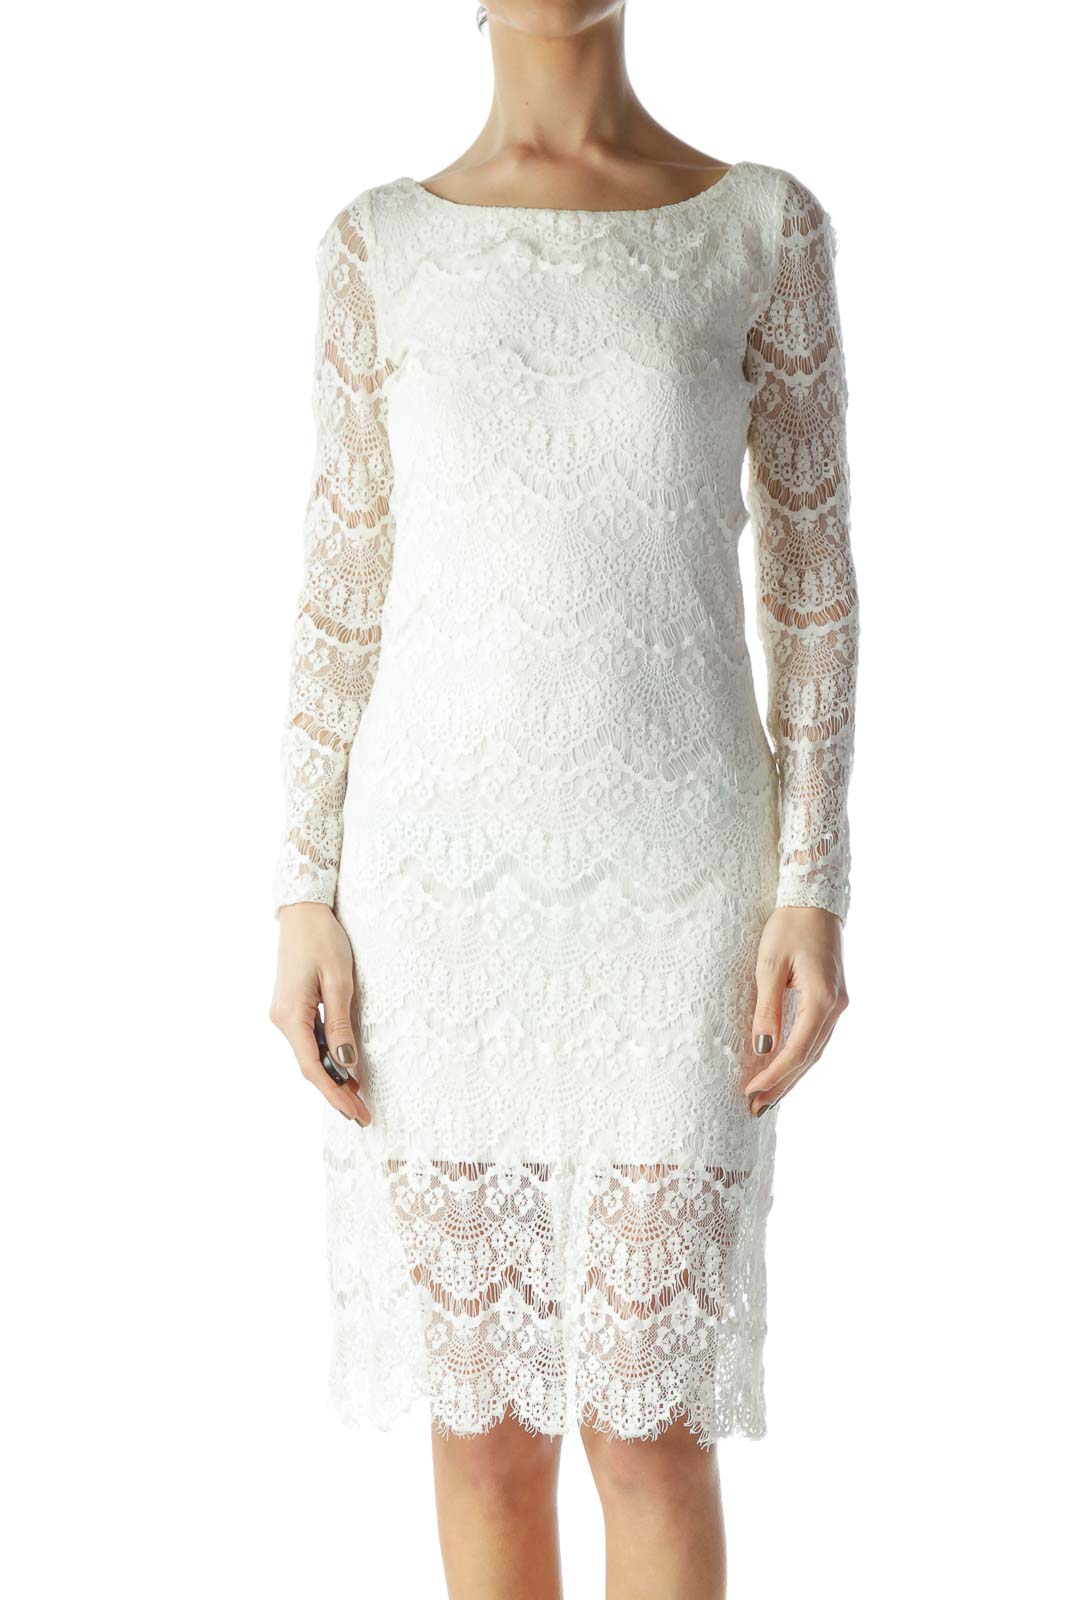 Cream Lace Long Sleeve Knit Dress